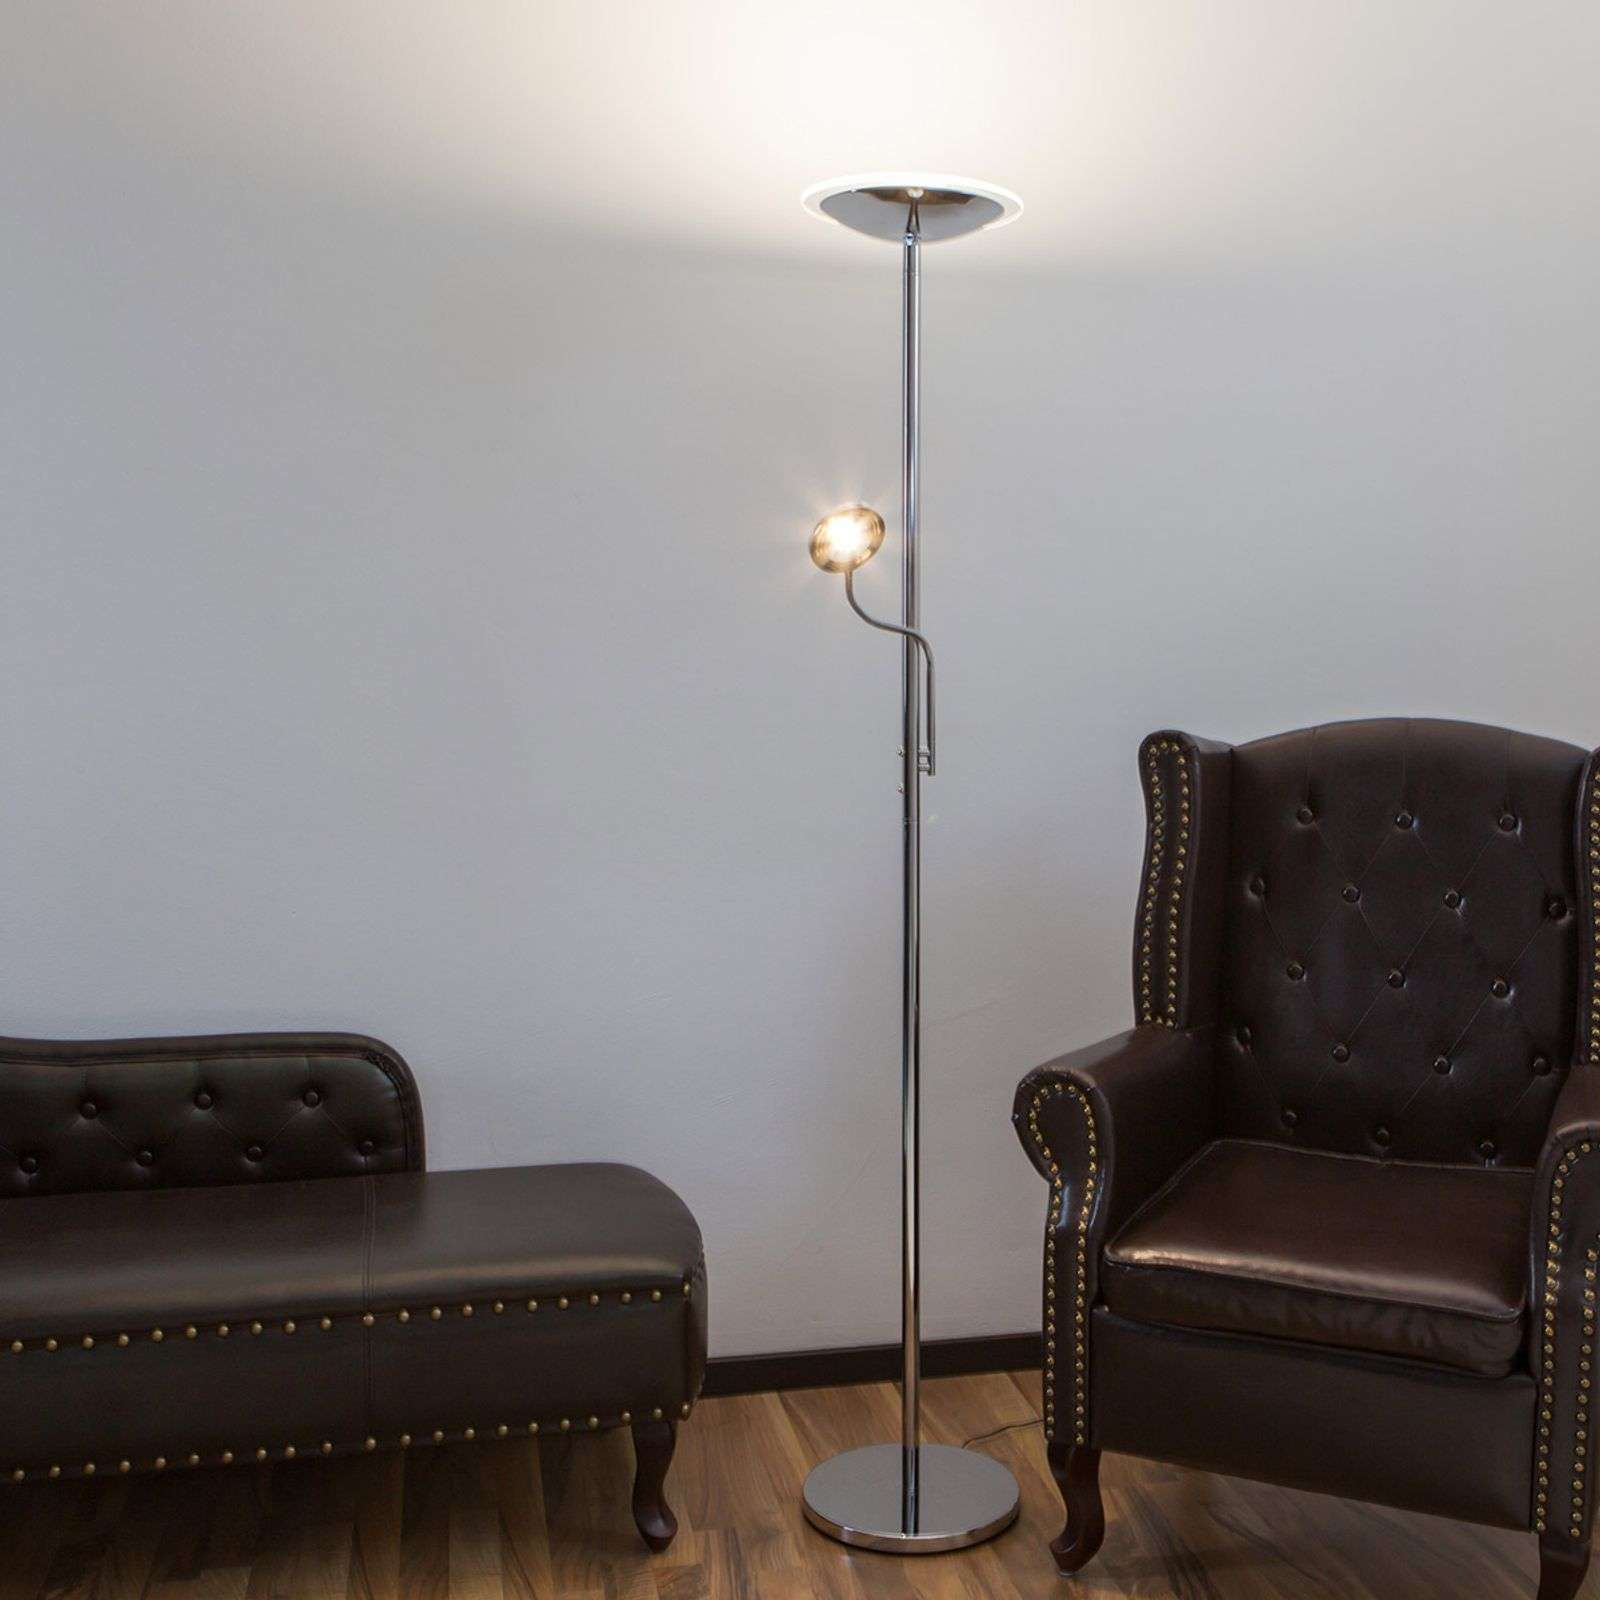 Chrome uplighter Malea with LEDs and reading light